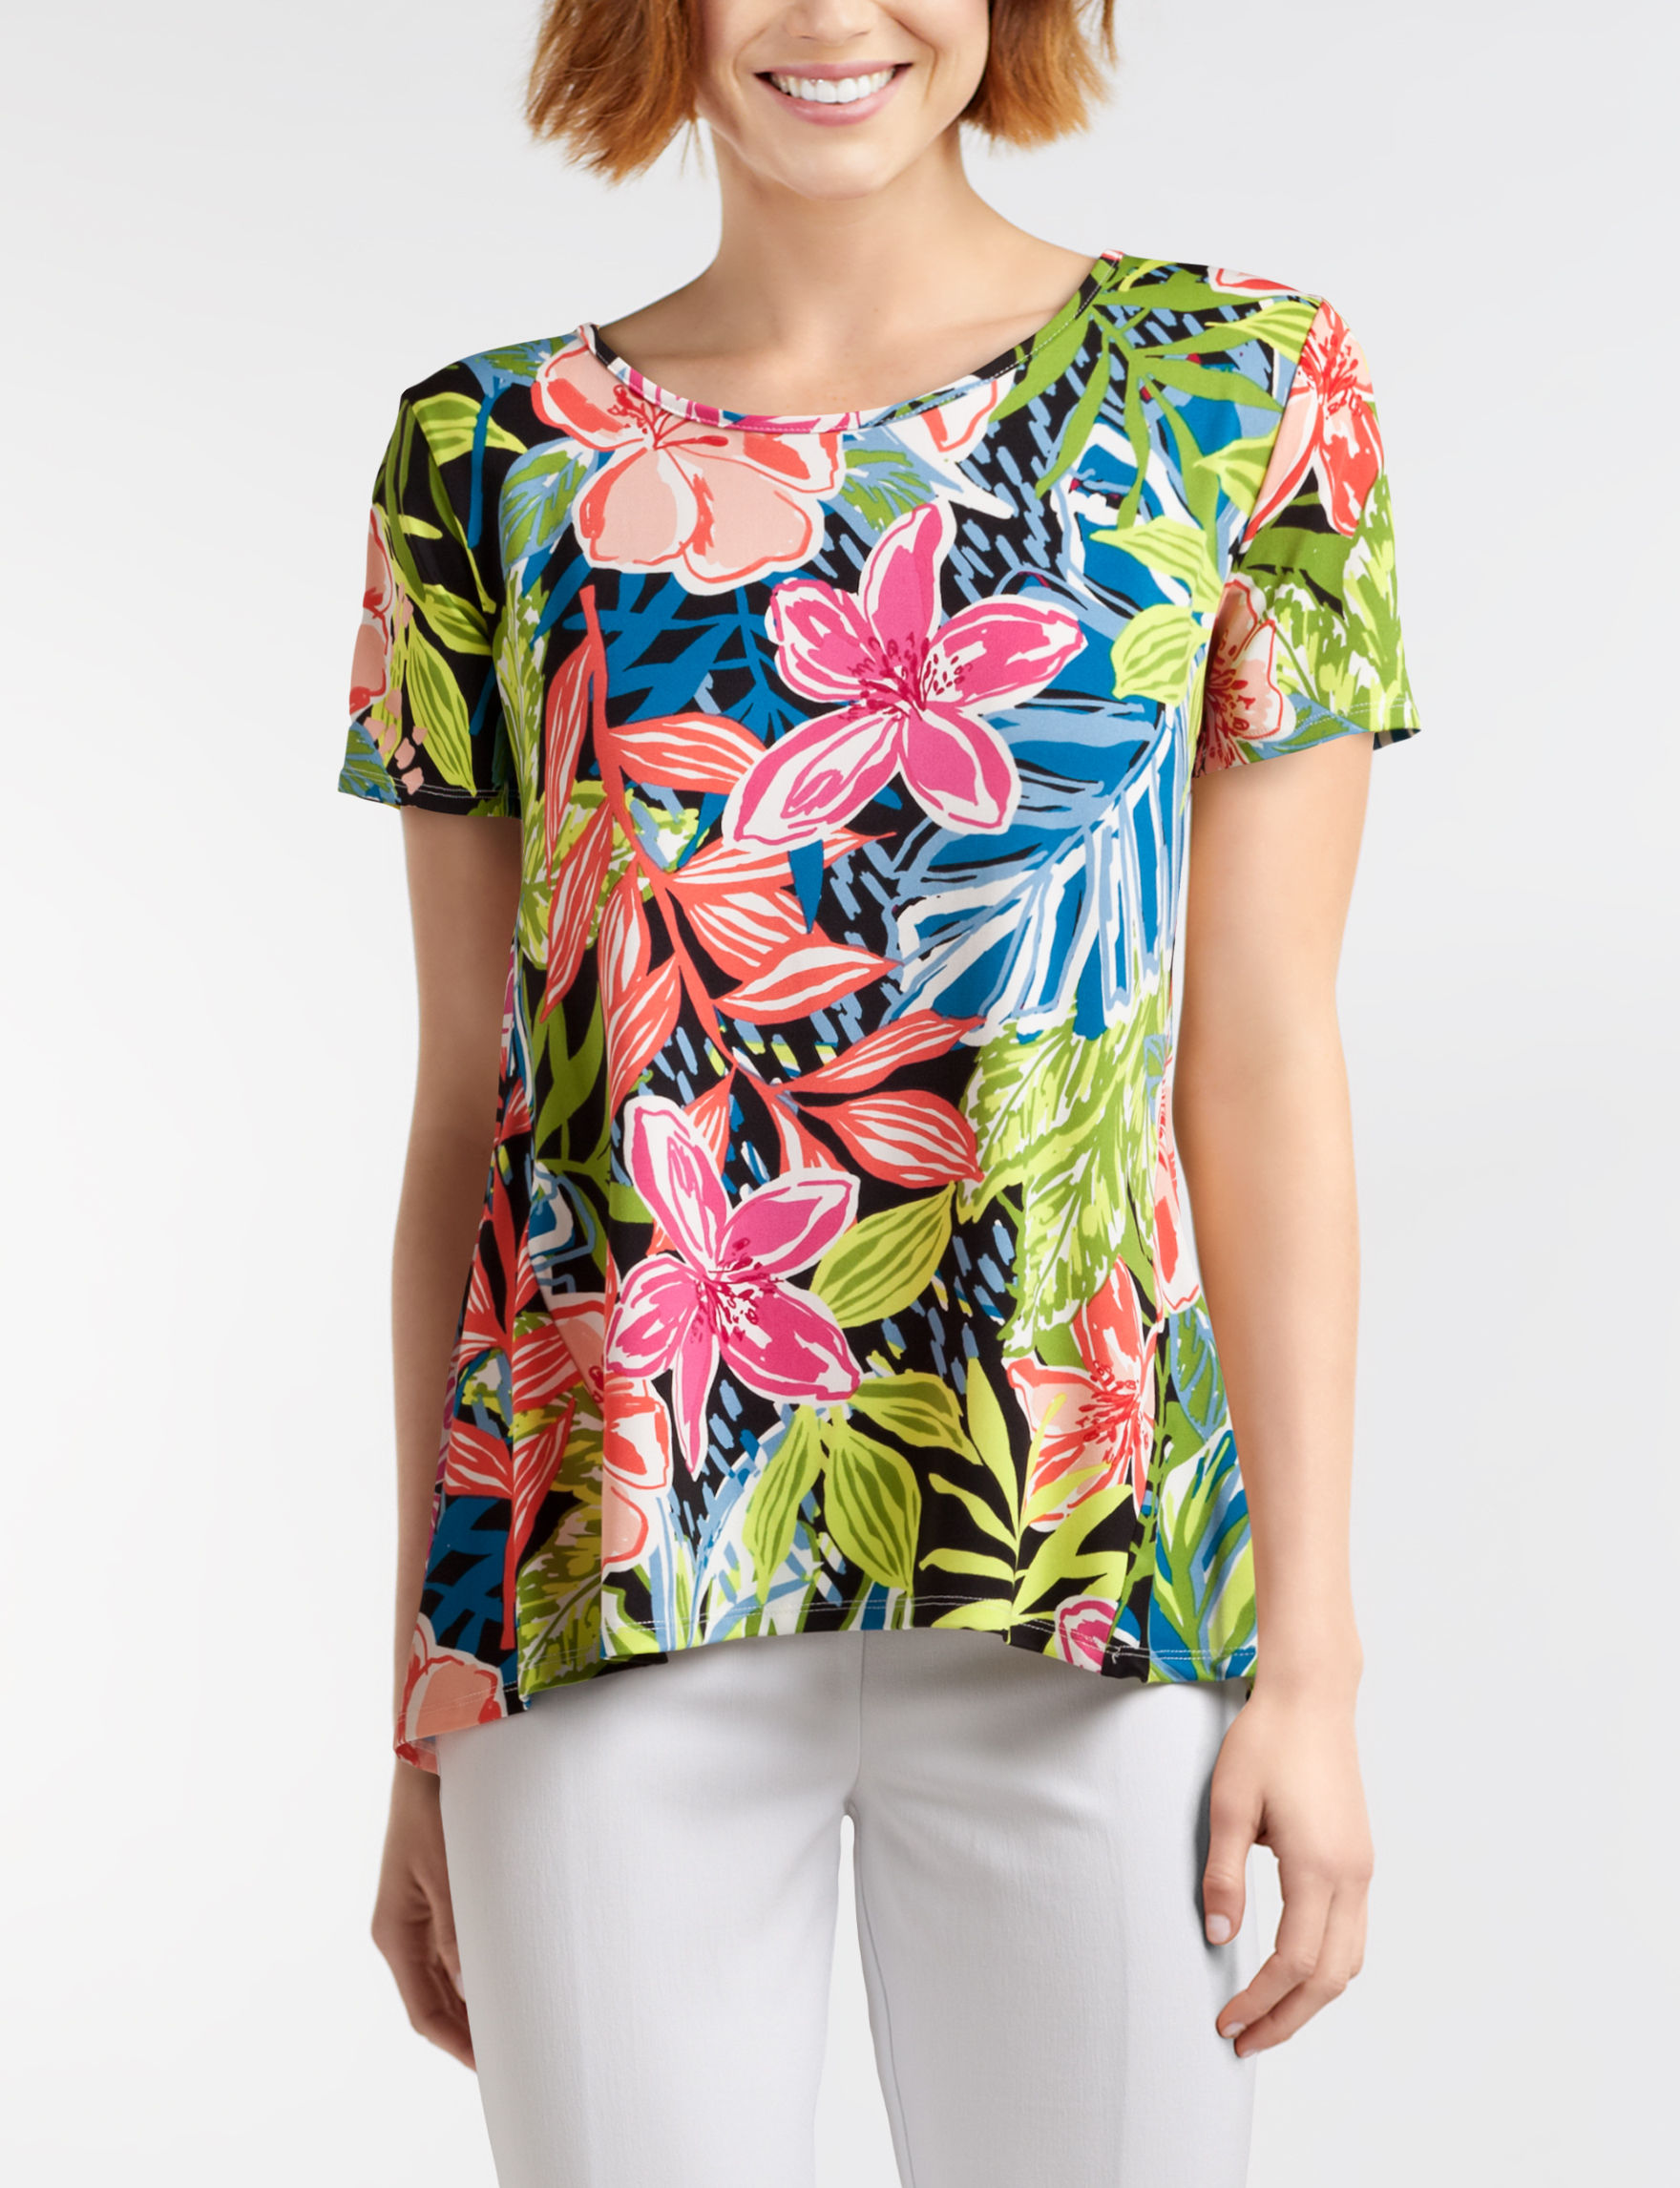 Sunny Leigh Green Floral Shirts & Blouses